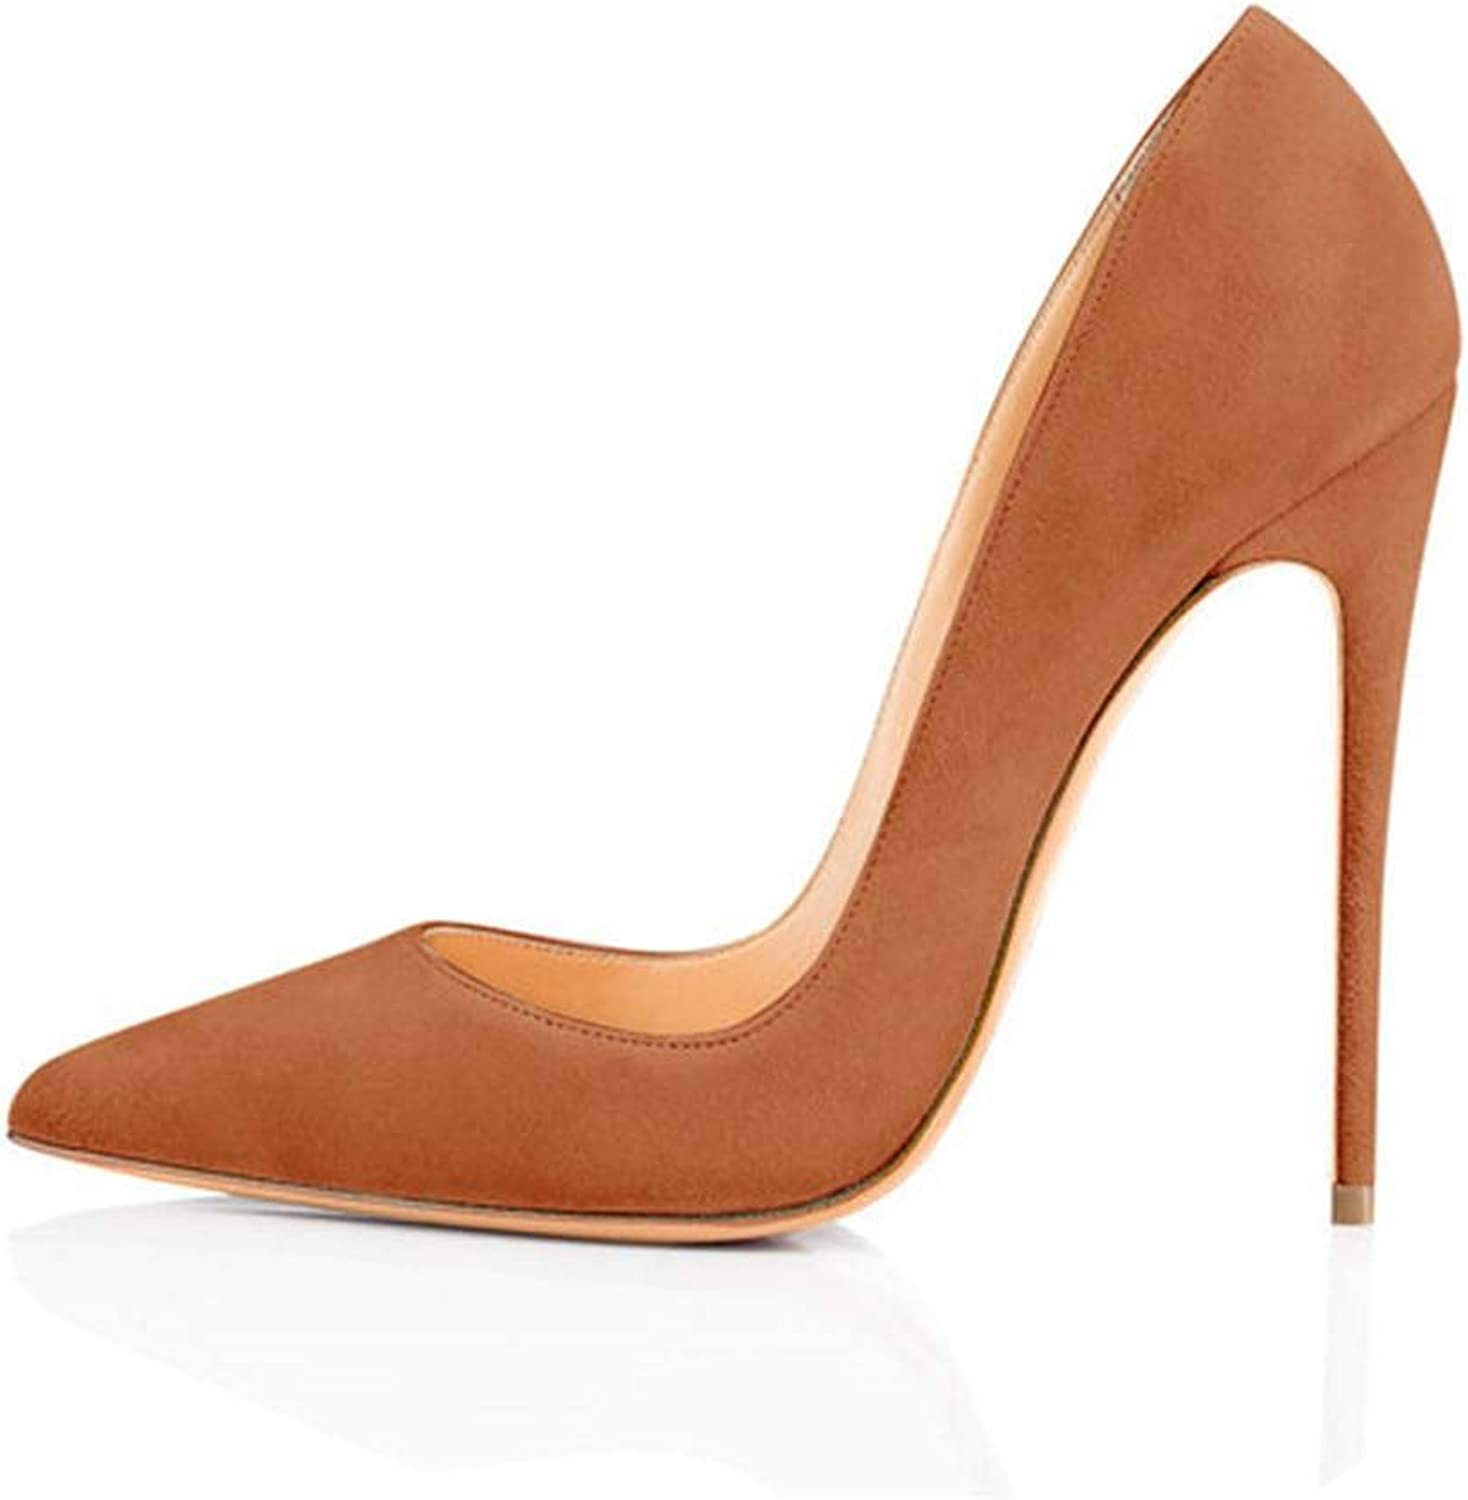 Lin-House Women shoes Thin High Heel Stilettos Pointed Toe Patent Leather shoes,H161223,15